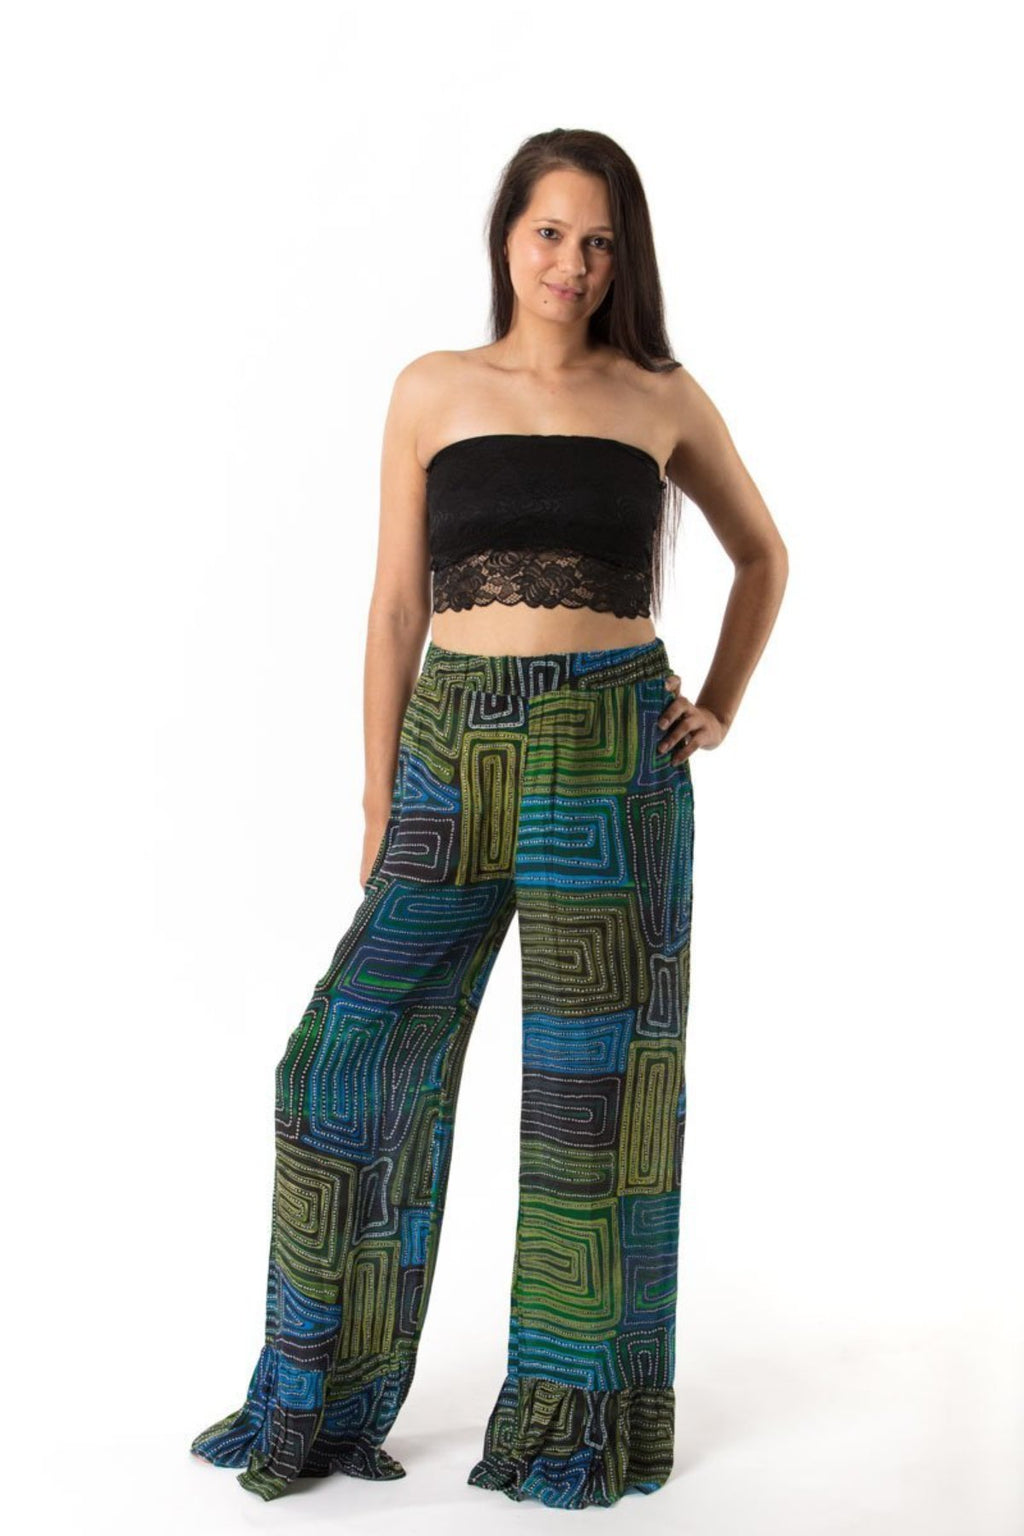 Michelle Ruffle Pants Pants Ethical Sustainable Vegan Organic Australian fashion womens clothes